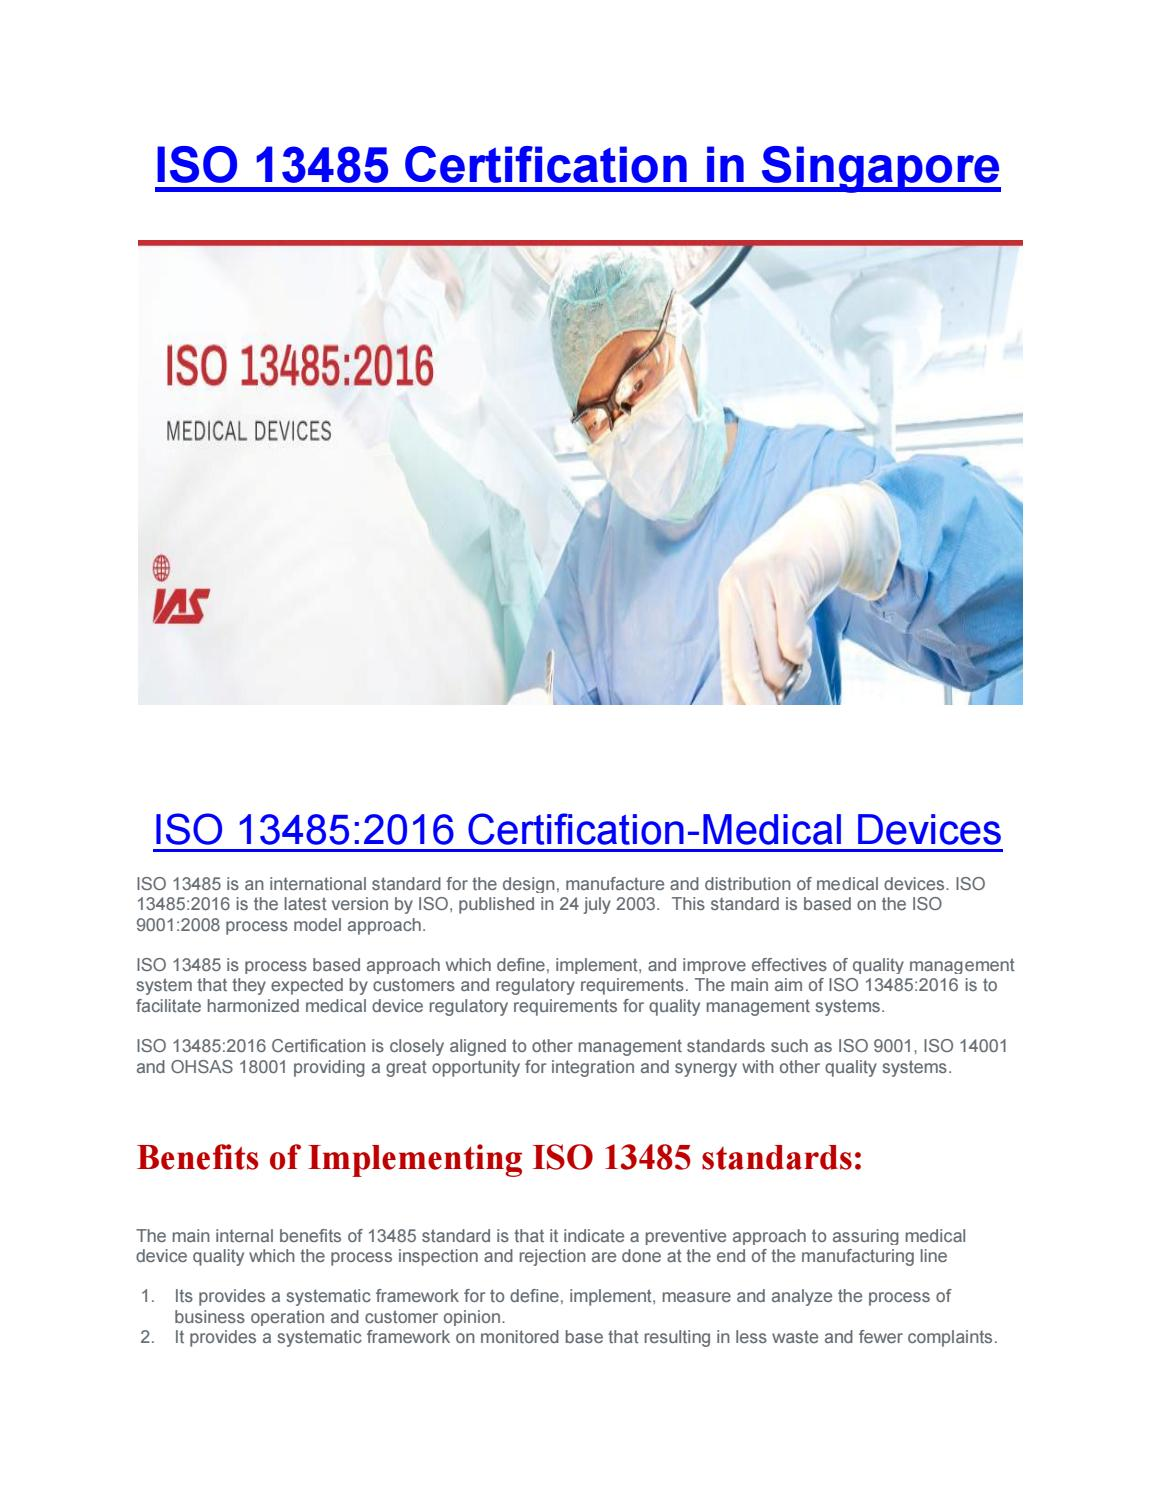 ISO 13485 Certification in Singapore by iassingapore - issuu